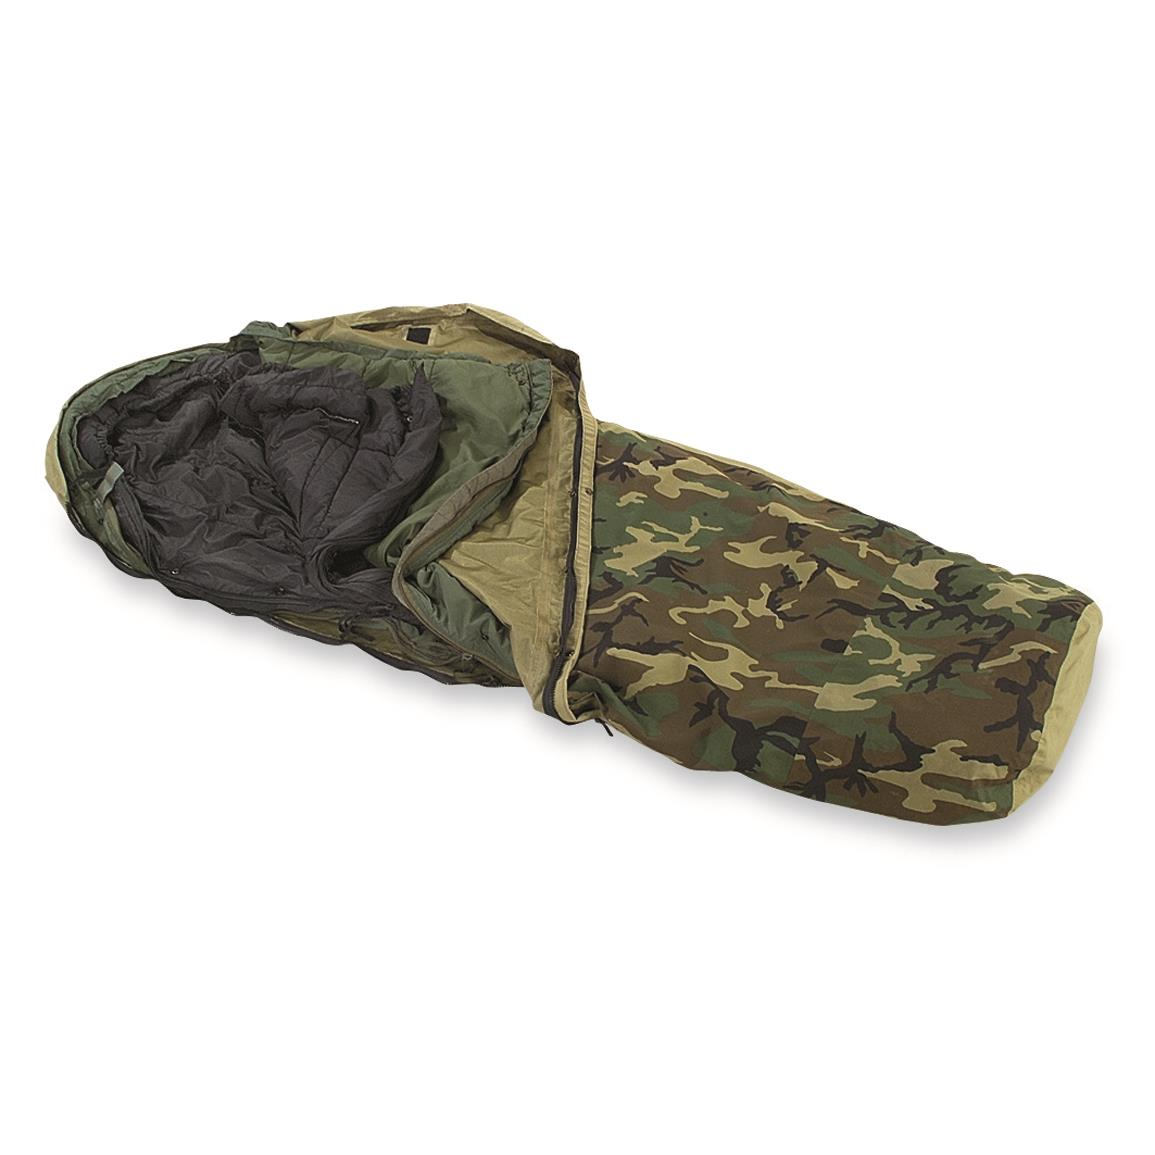 U.S. Military Surplus 3-Layer ECWS Sleeping Bag System, Used